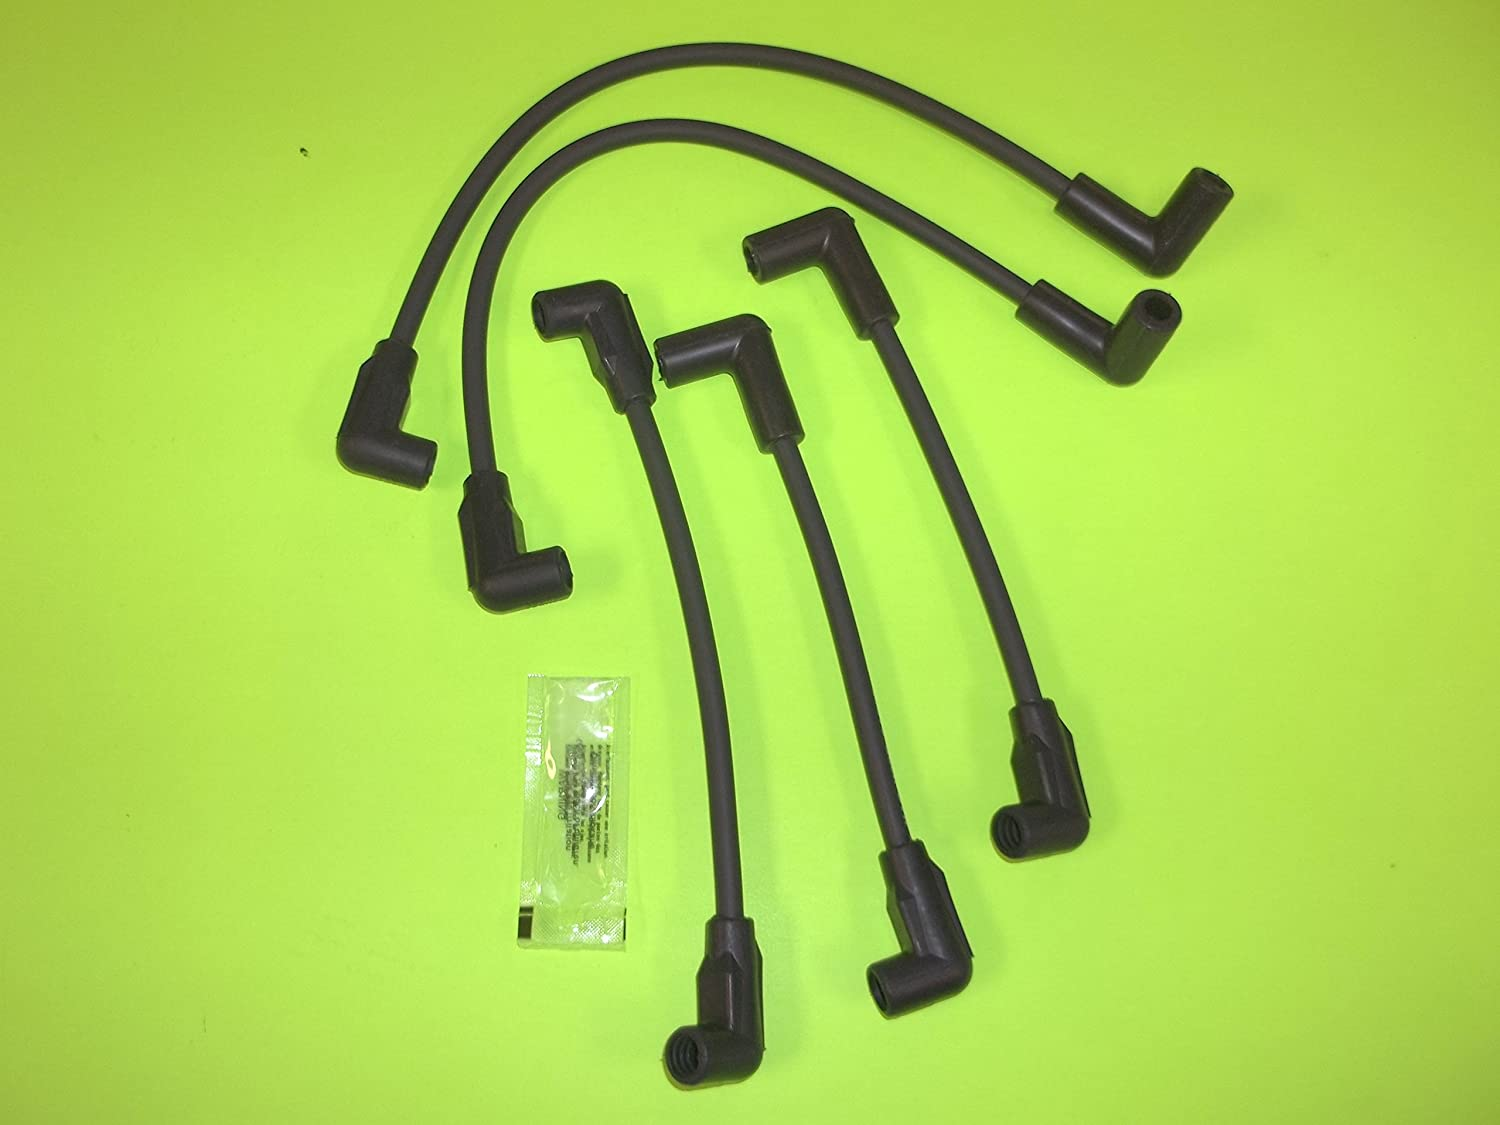 RPS Spark Plug Wires for Mercruiser or Volvo Penta 3 0 Engines with Delco  EST HEI Distributor